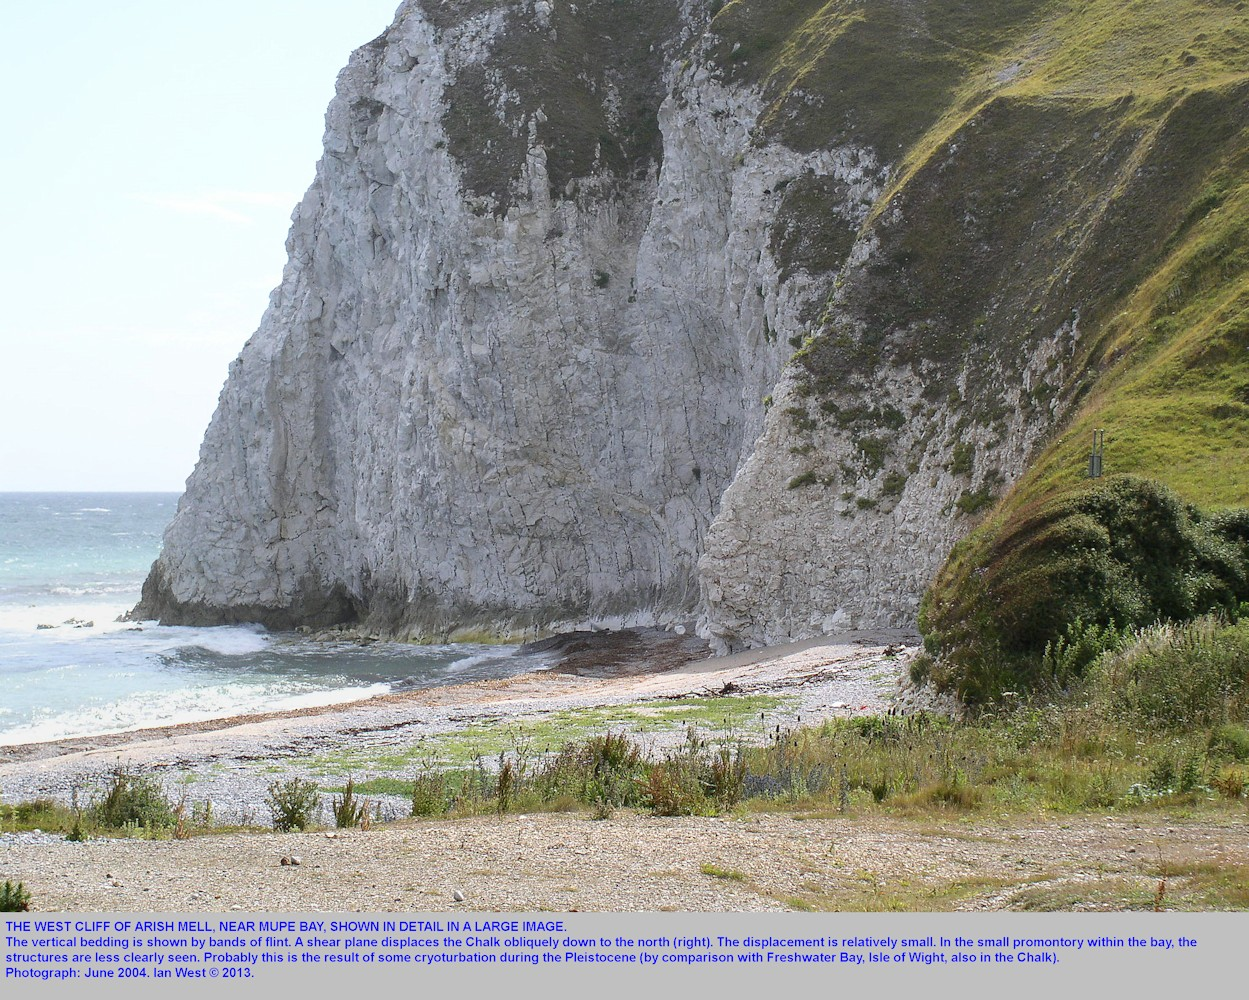 A large, detailed view of the west cliff of Arish Mell, near Mupe Bay, Dorset